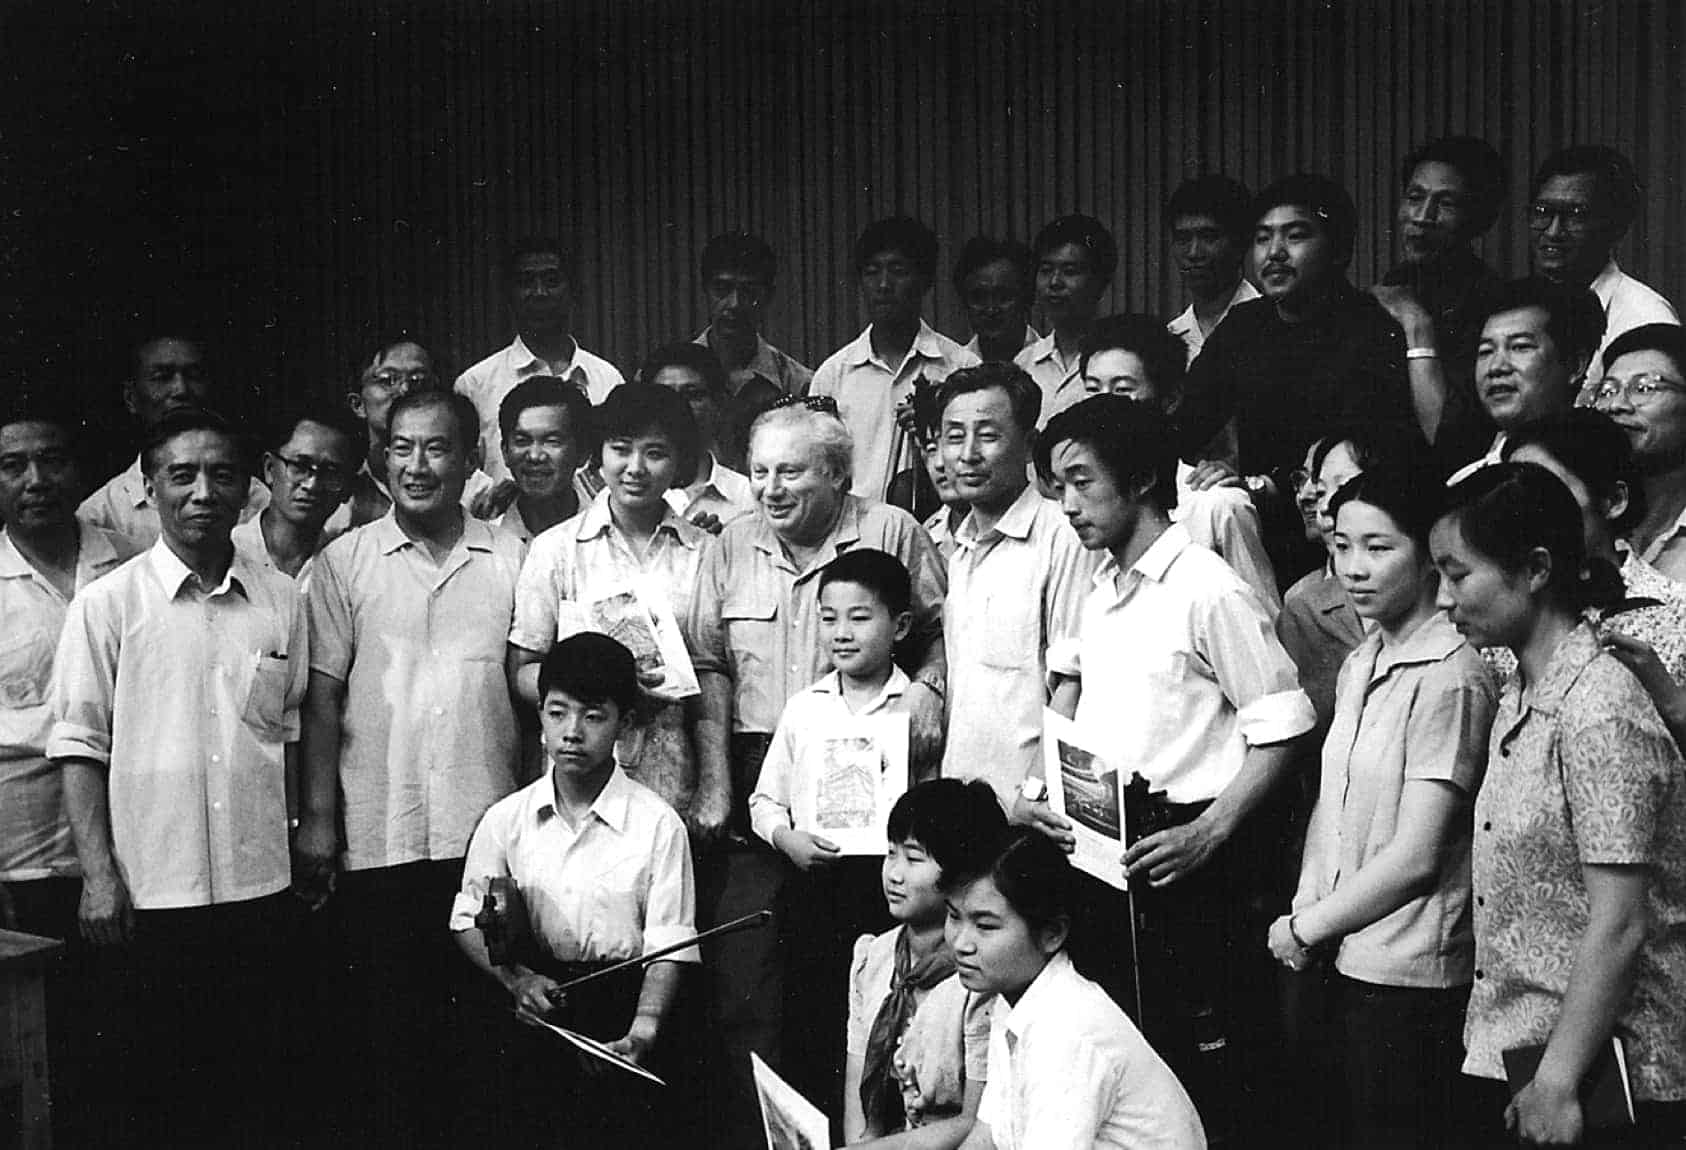 In Beijing, Stern appeared with the Central Philharmonic Orchestra in a concert that was televised live throughout China (1980)